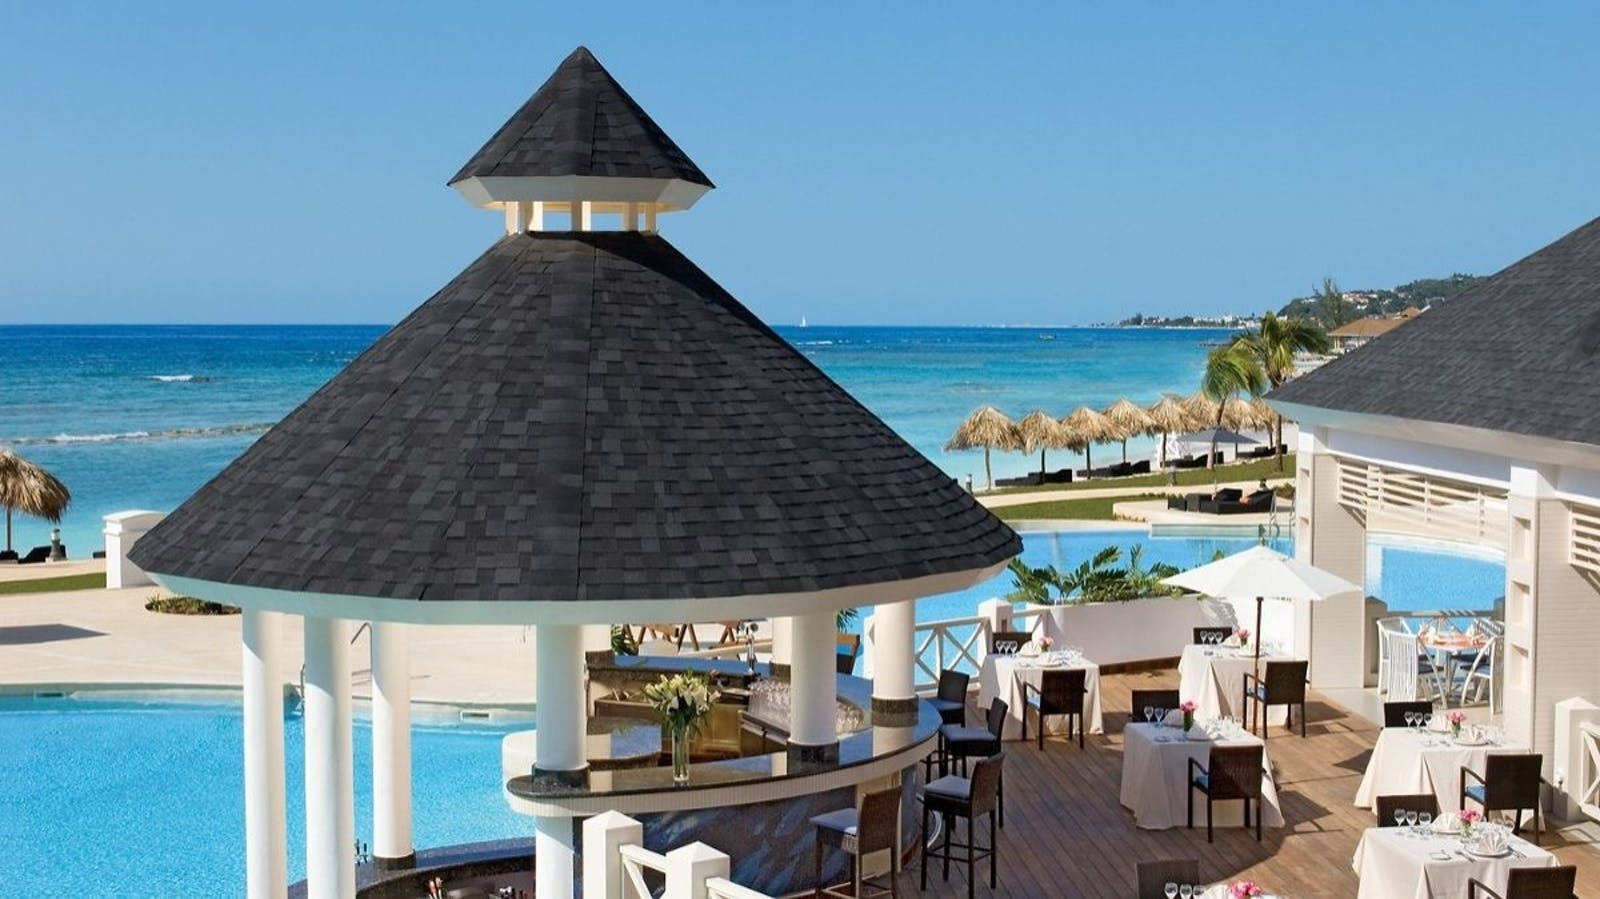 Seaside Grill at Secrets Wild Orchid Montego Bay, Jamaica